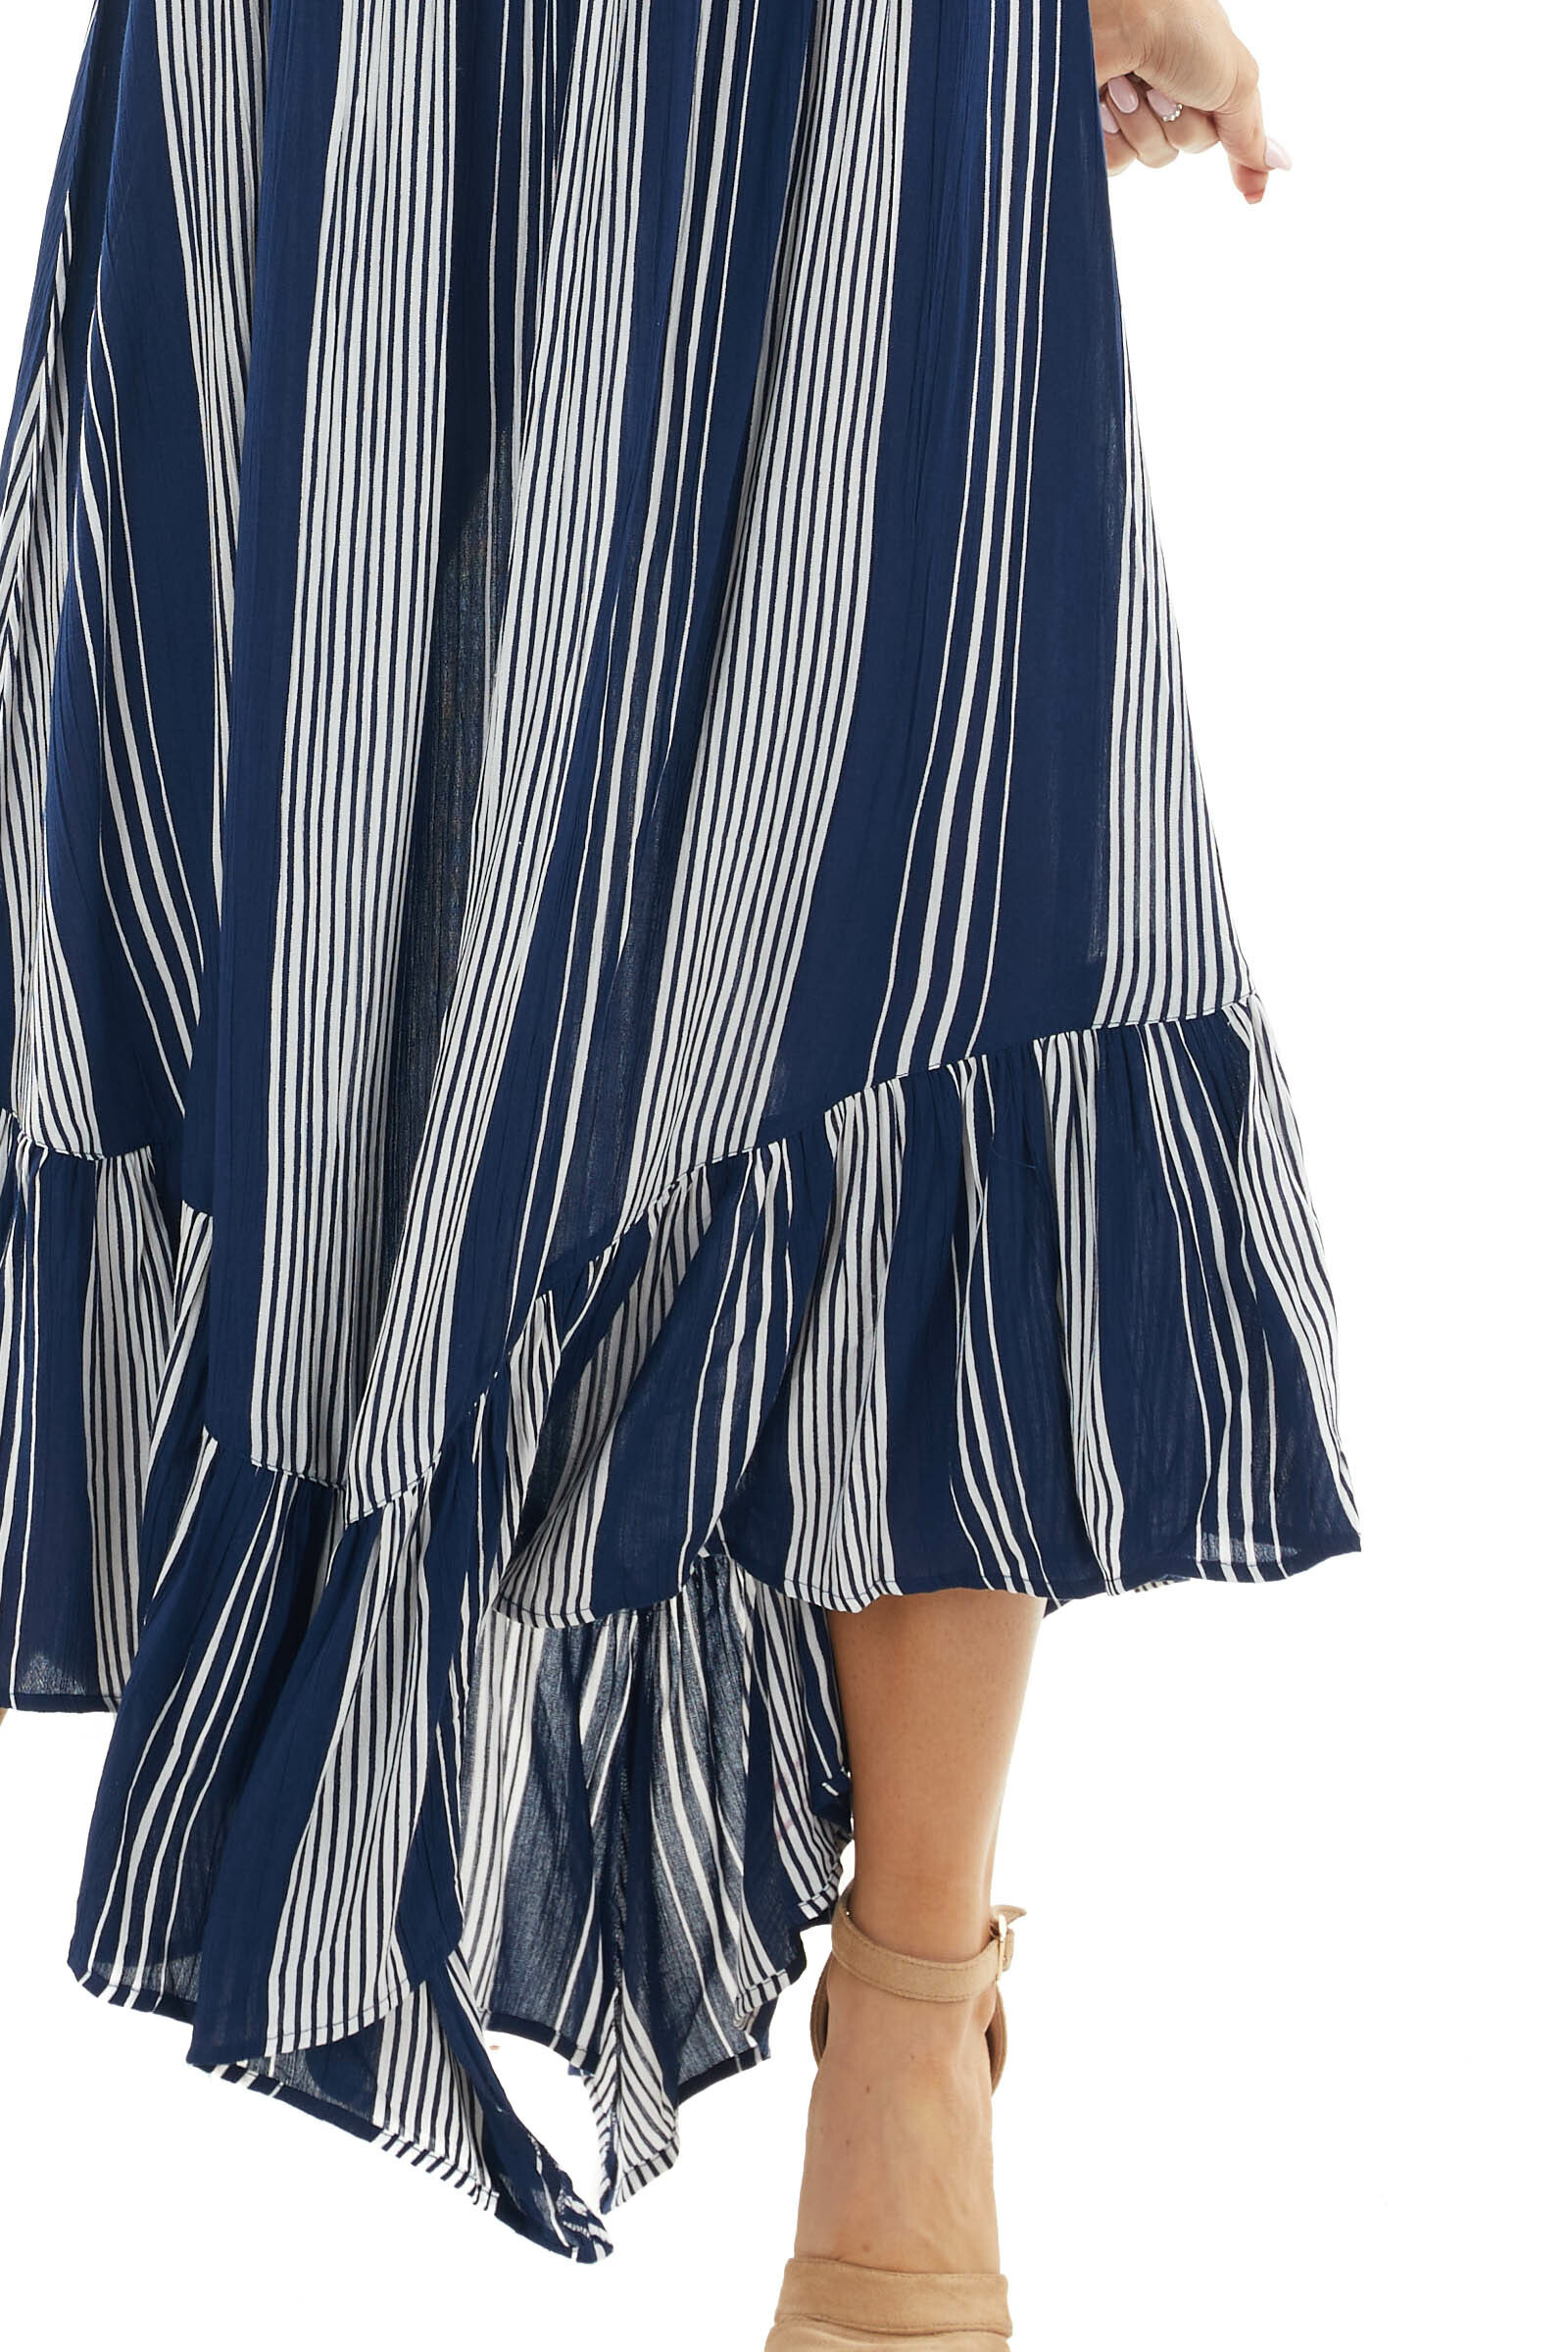 Catalina Blue Striped Strapless Smocked Woven Maxi Dress